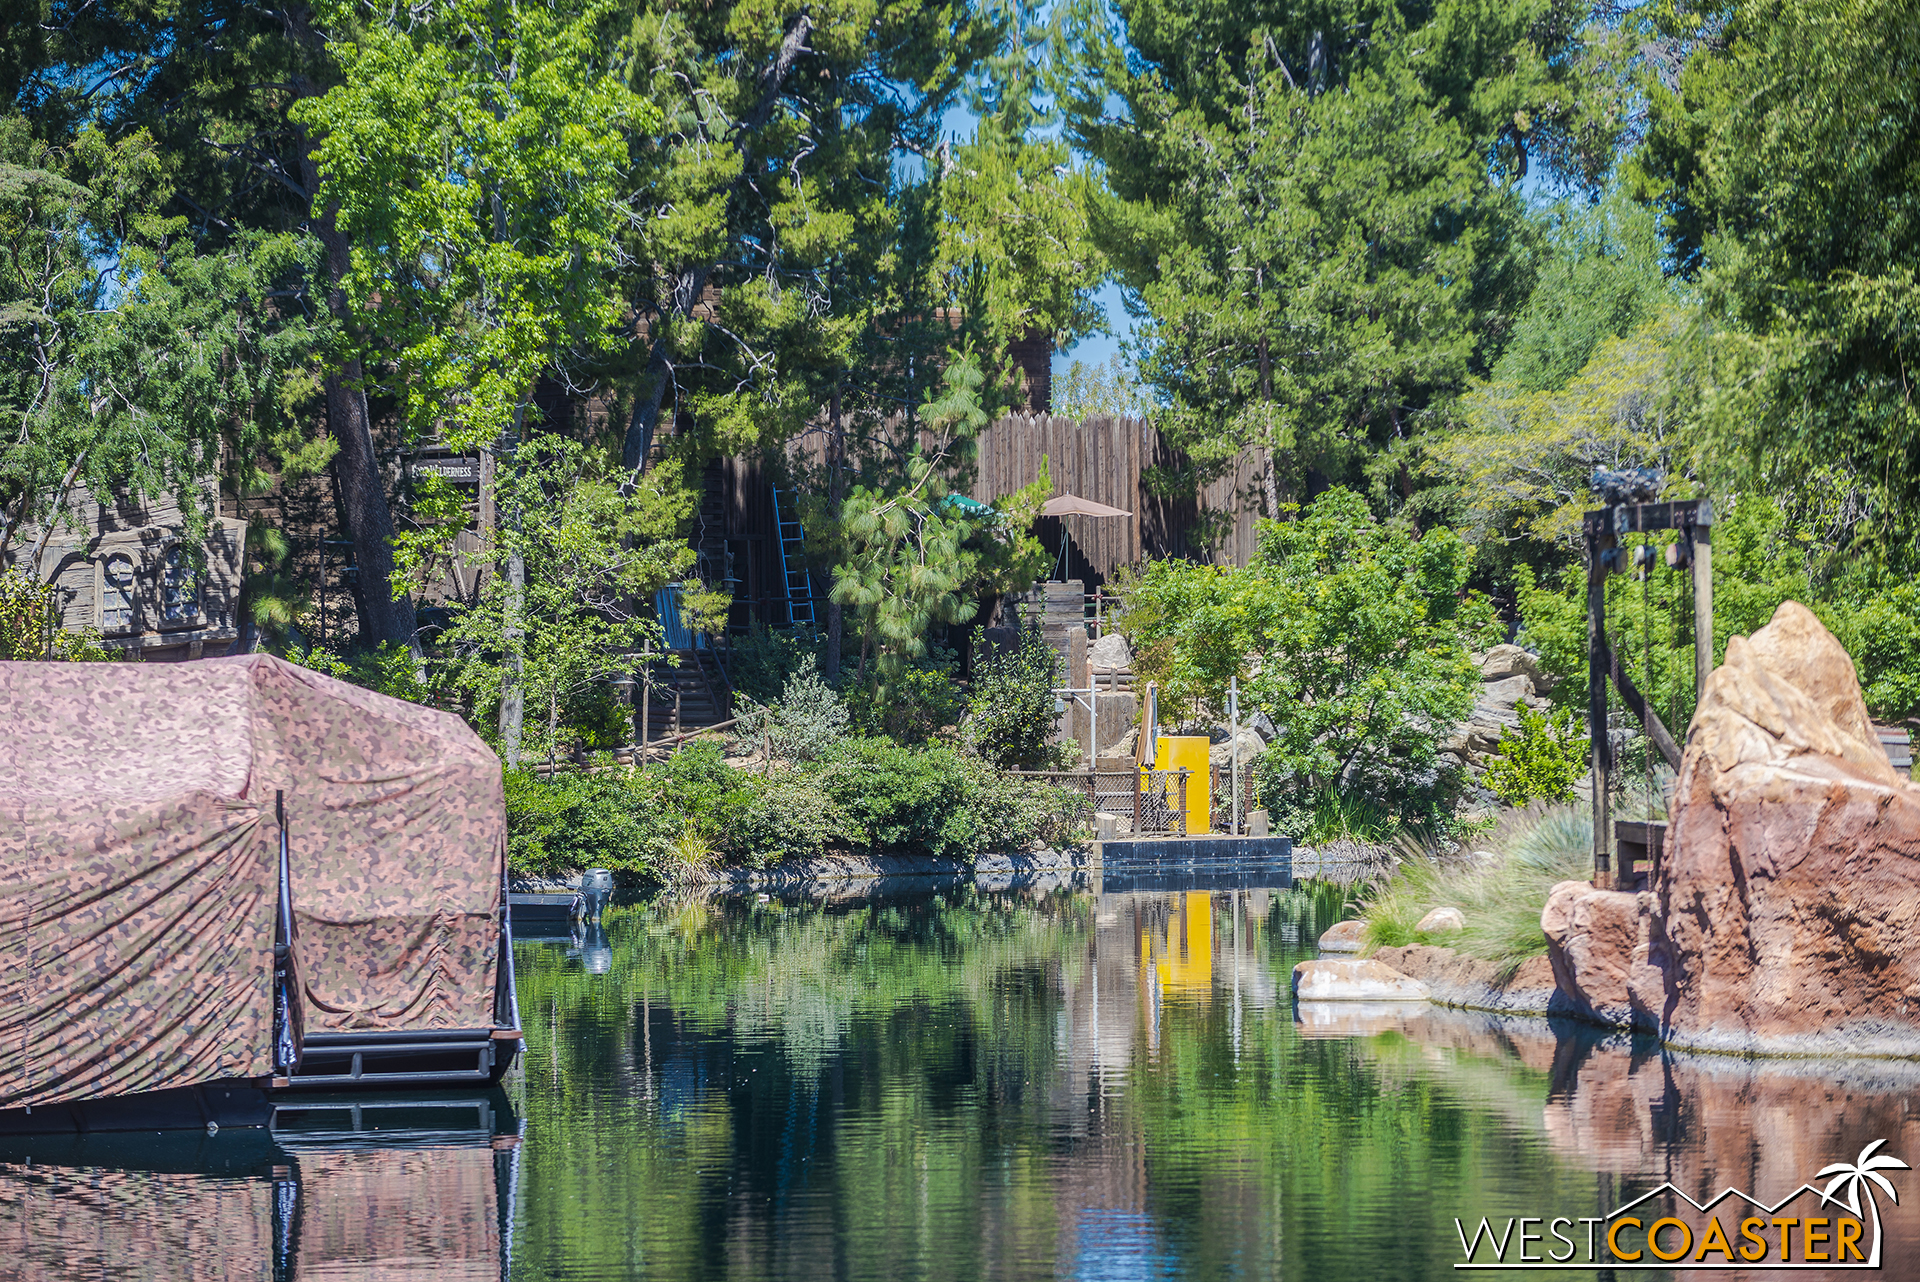 Along the Rivers of America, the dams are totally down.